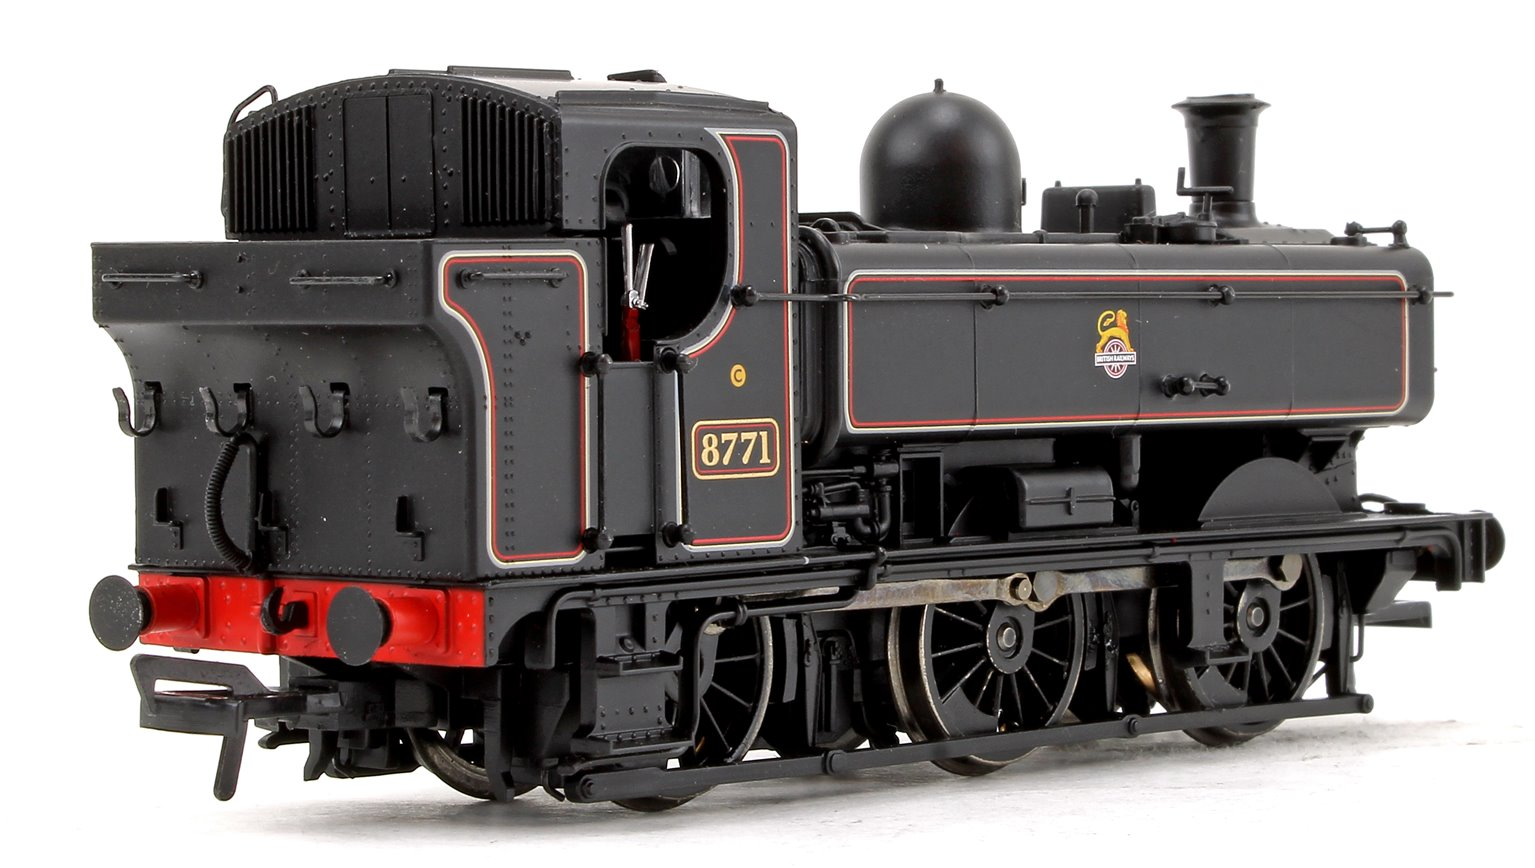 GWR 8750 Pannier Tank BR Lined Black (Early Emblem) Locomotive No.8771